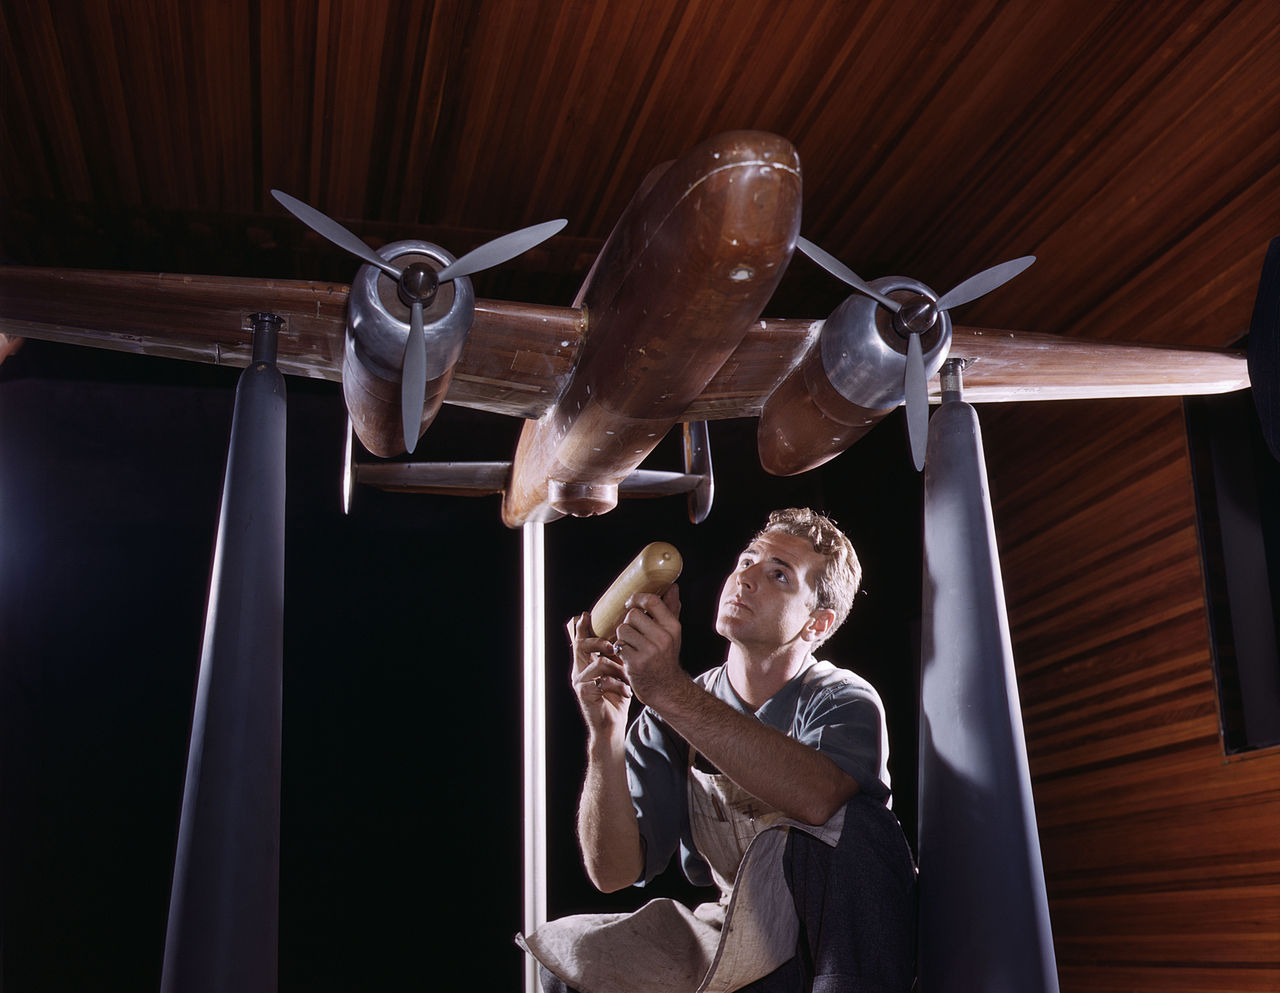 An experimental scale model of the B-25 plane is prepared for wind tunnel tests in the plant of the North American Aviation, Inc, Inglewood, Calif, The model maker holds an exact miniature reproduction of the type of bomb the plane will carry.